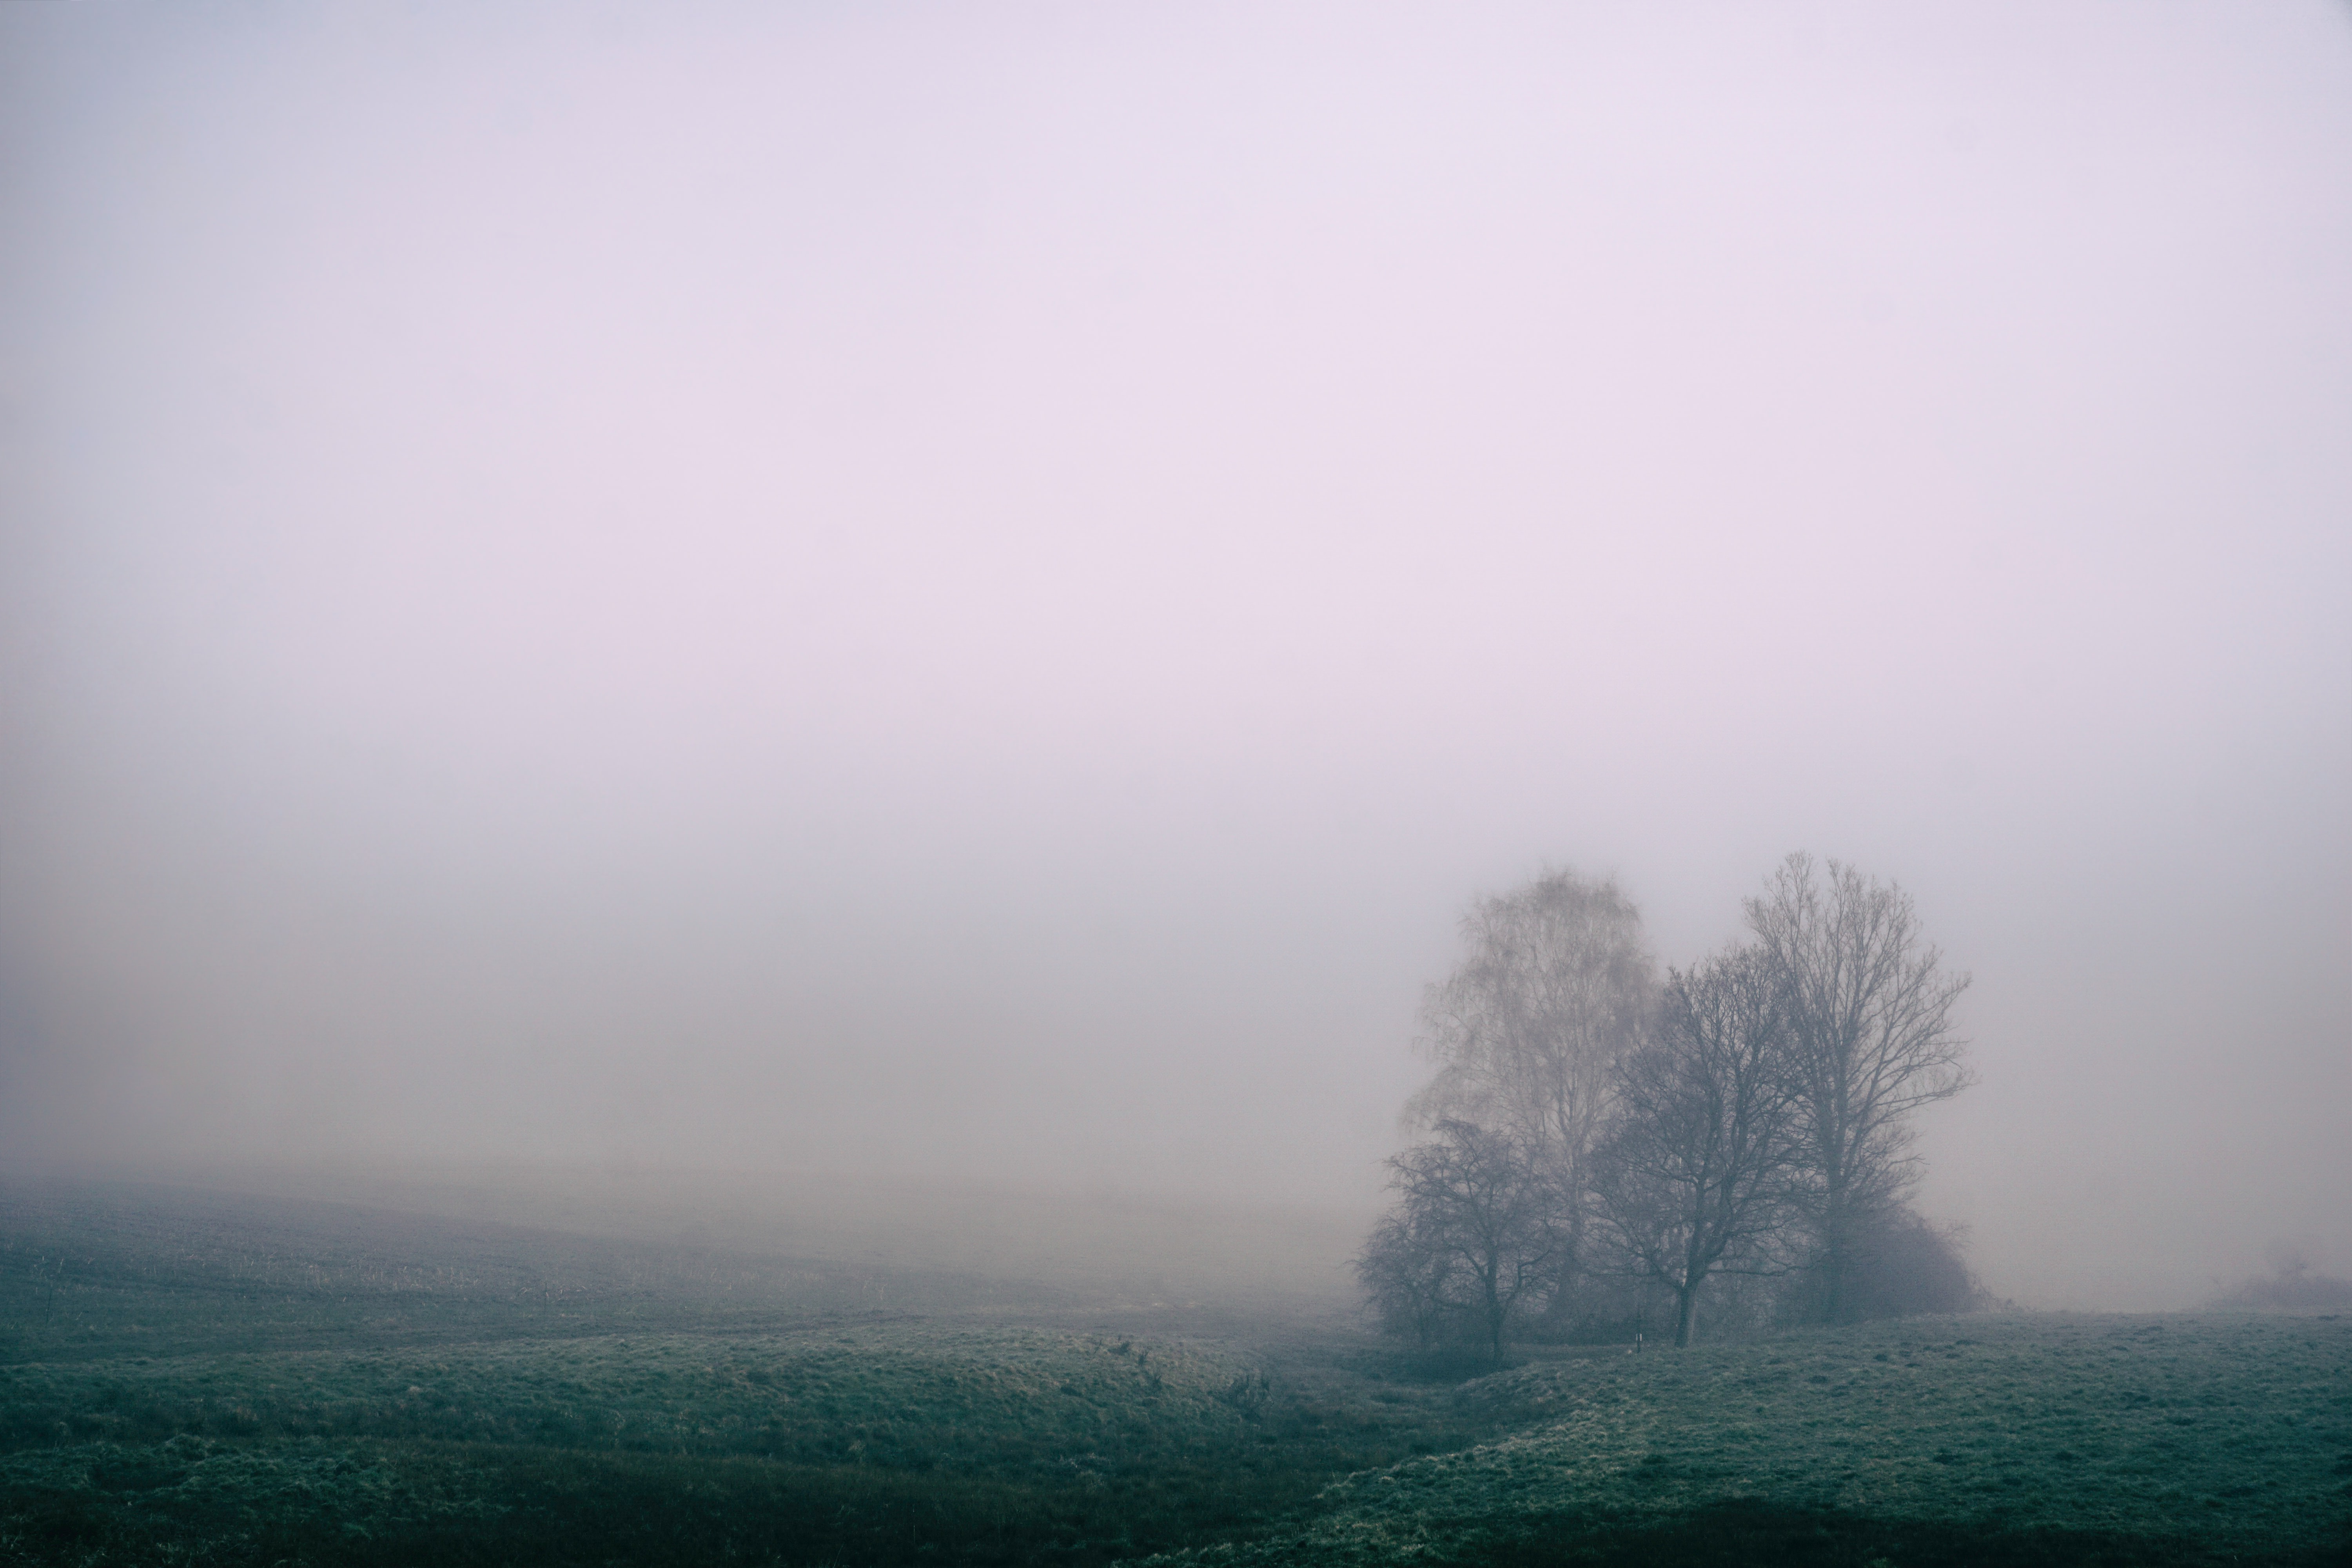 A foggy field with a gray misty sky